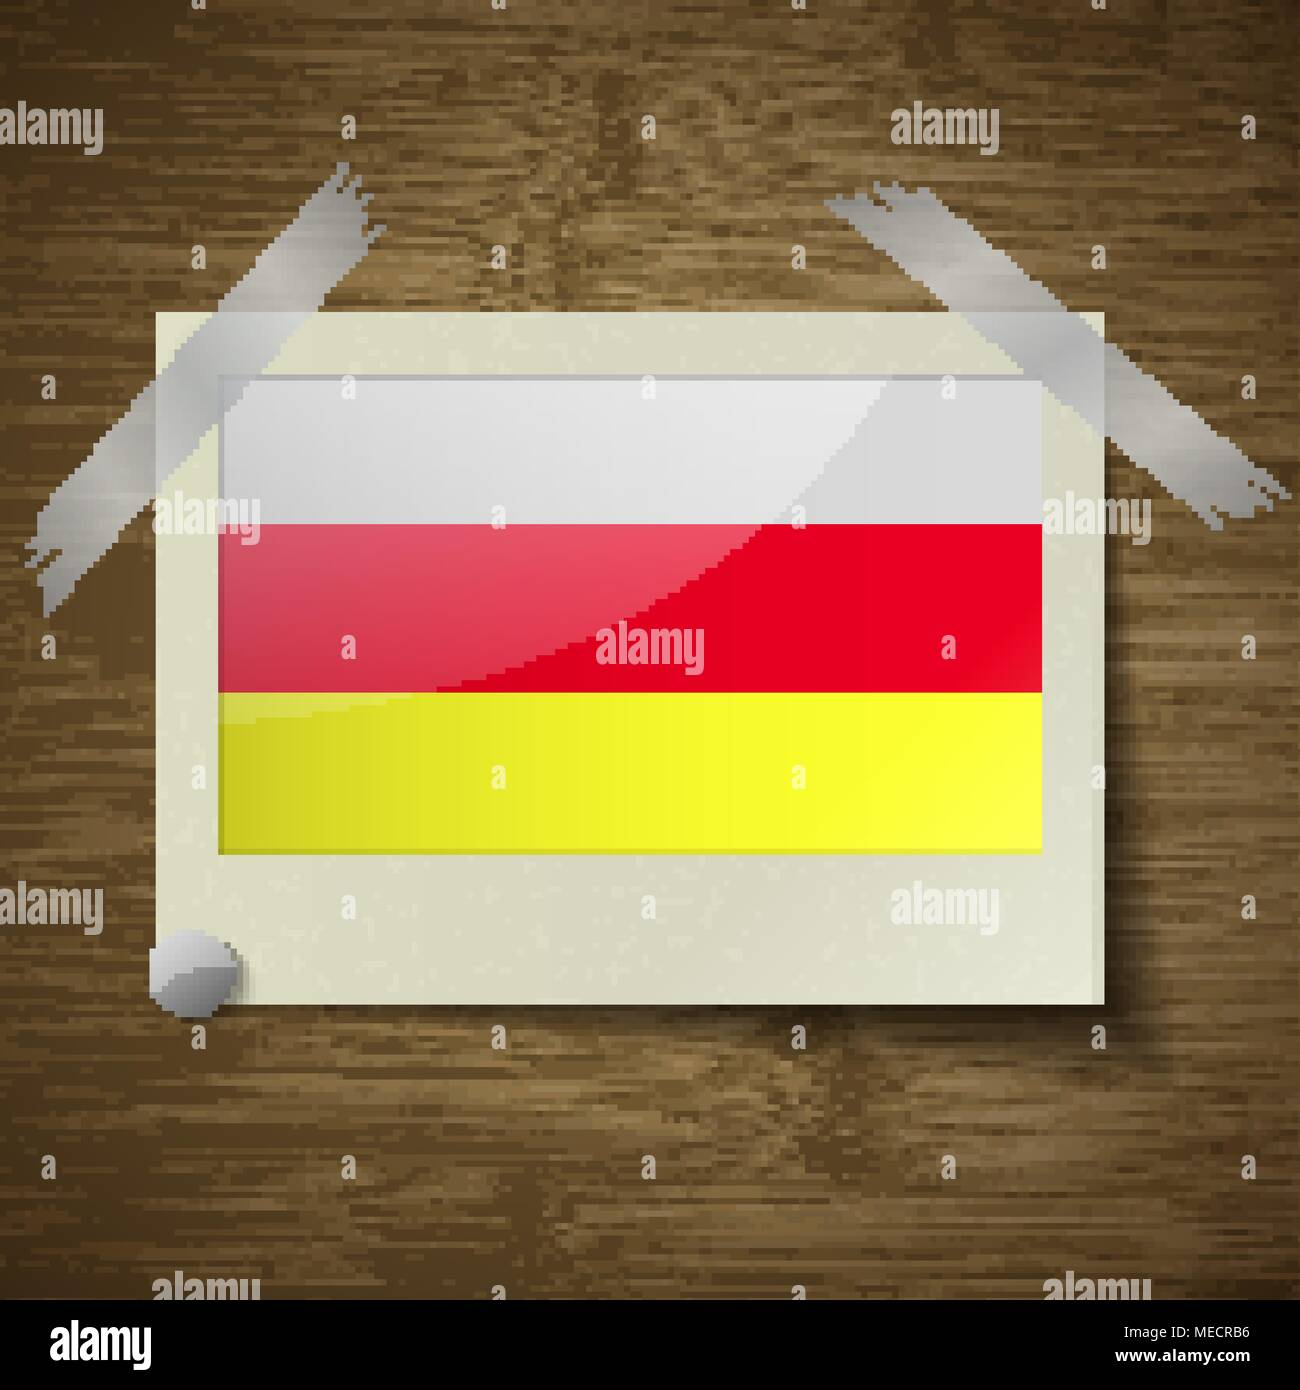 Flags of North Ossetia at frame on wooden texture. Vector illustration - Stock Image